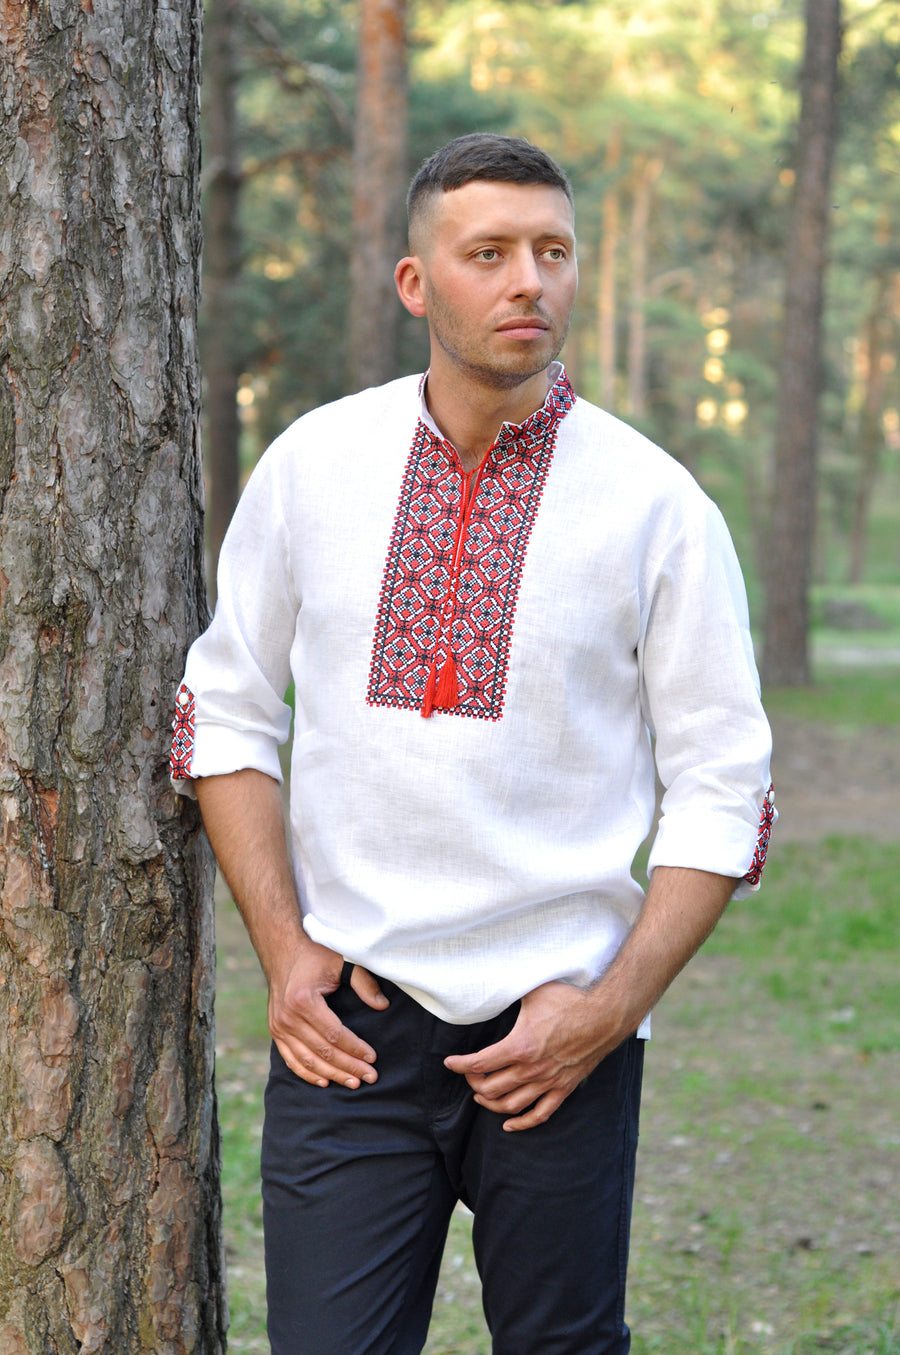 White embroidered shirt for a confident men